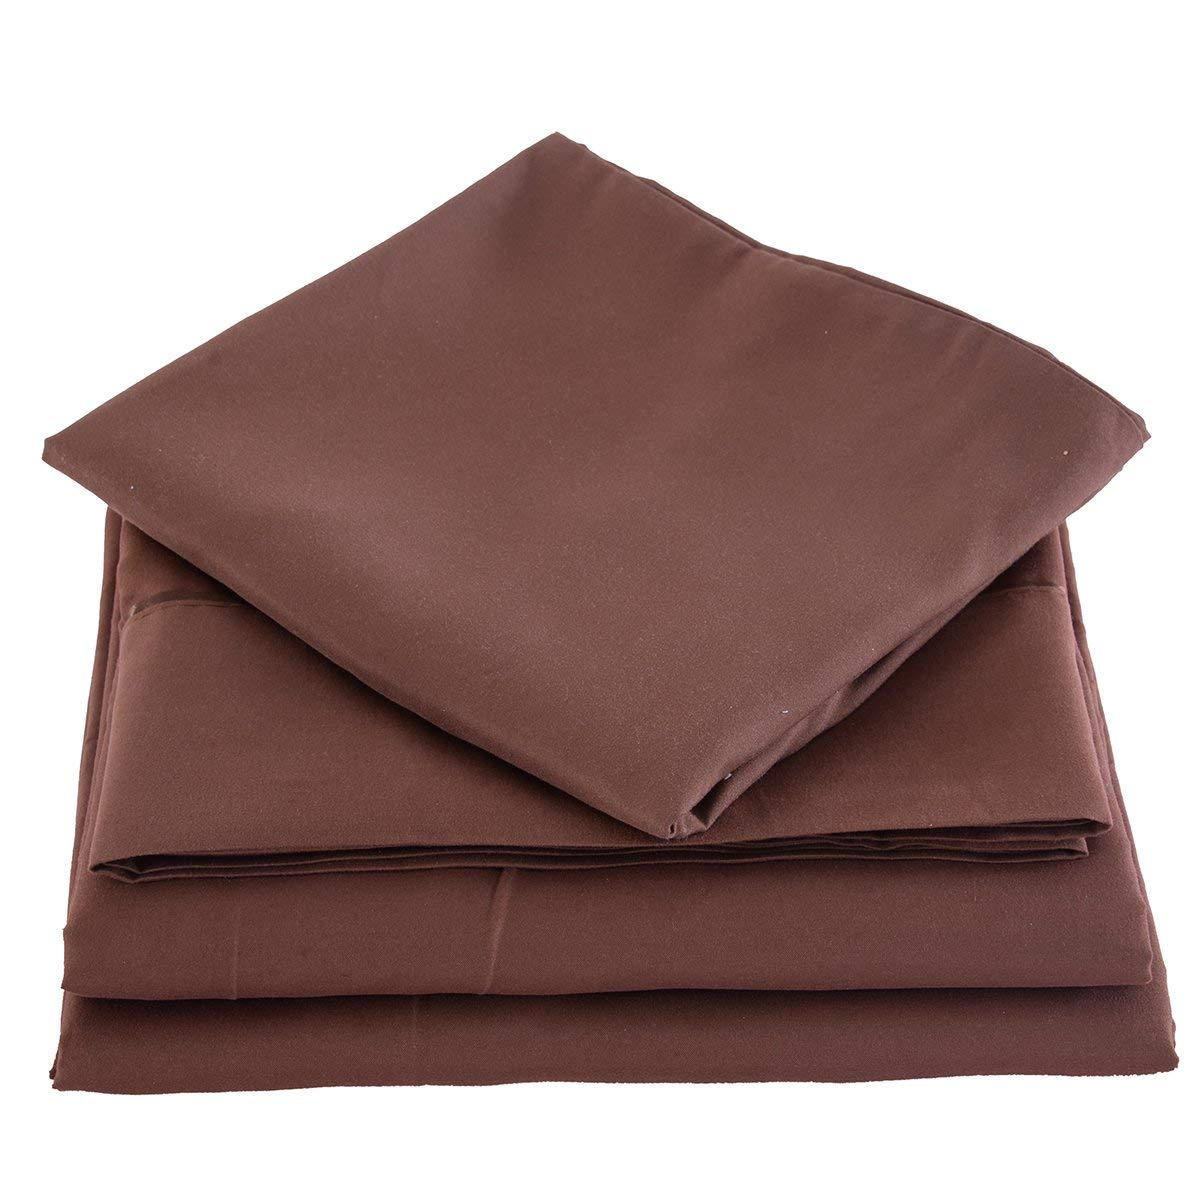 Full Bed Sheets Set Made From Super Soft Microfiber Grip